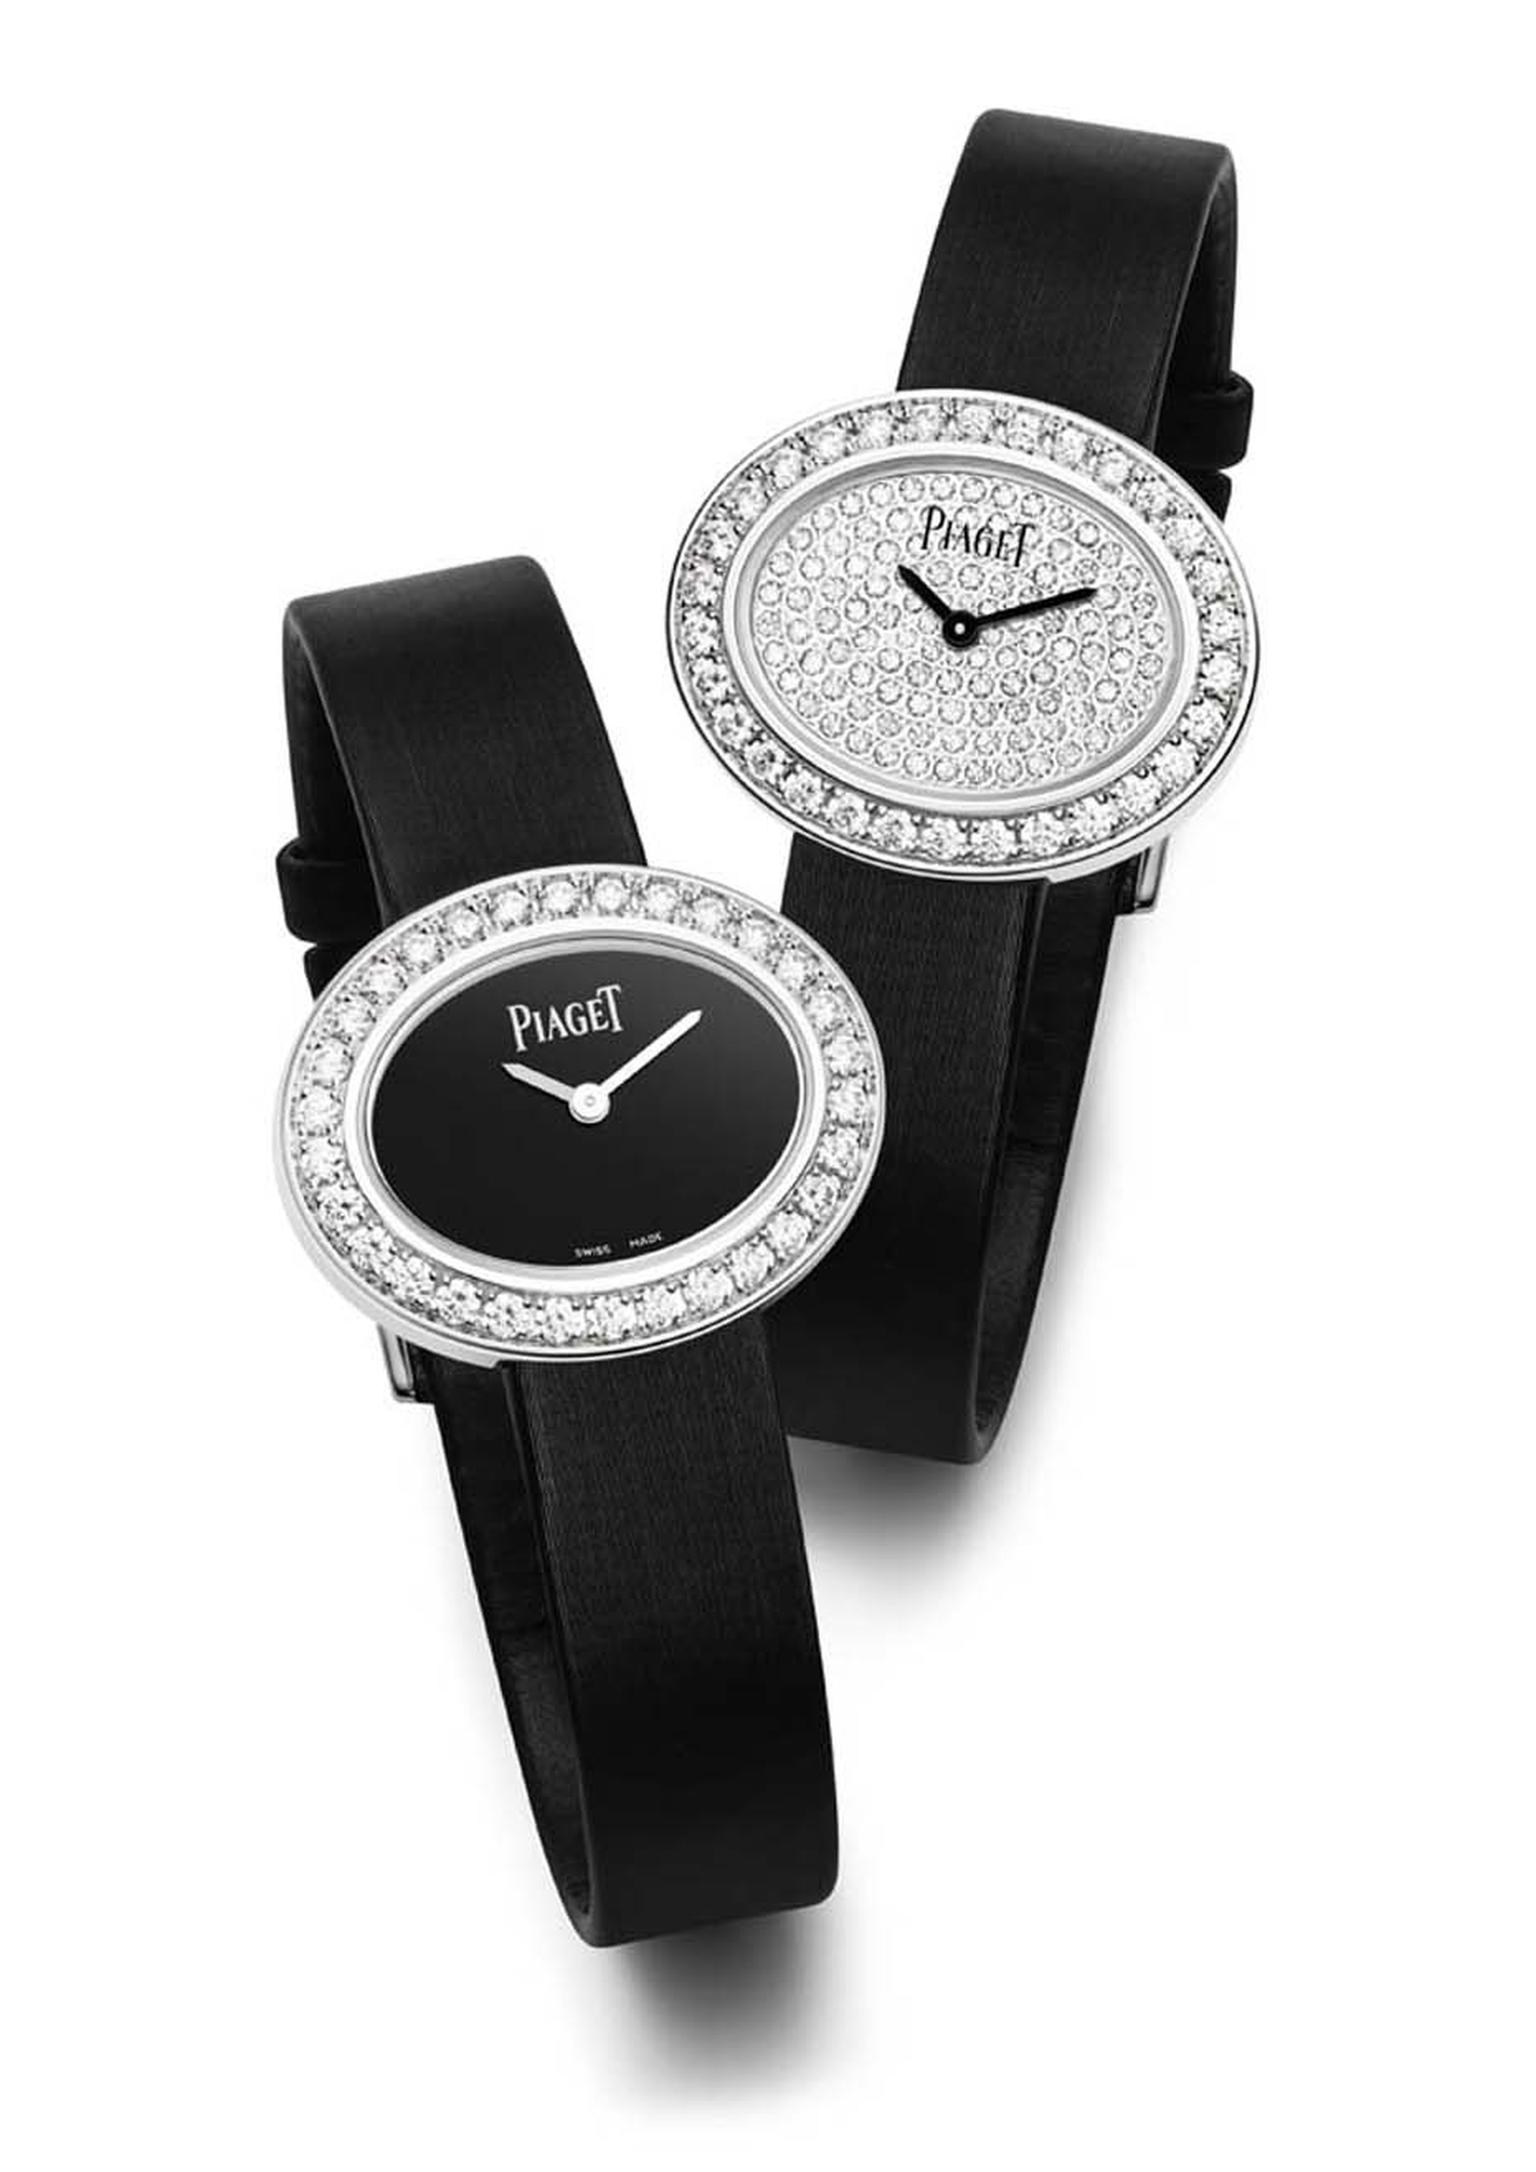 The new Piaget Limelight Diamonds watch with an oval-shaped case echoes the shape of a classic solitaire diamond.